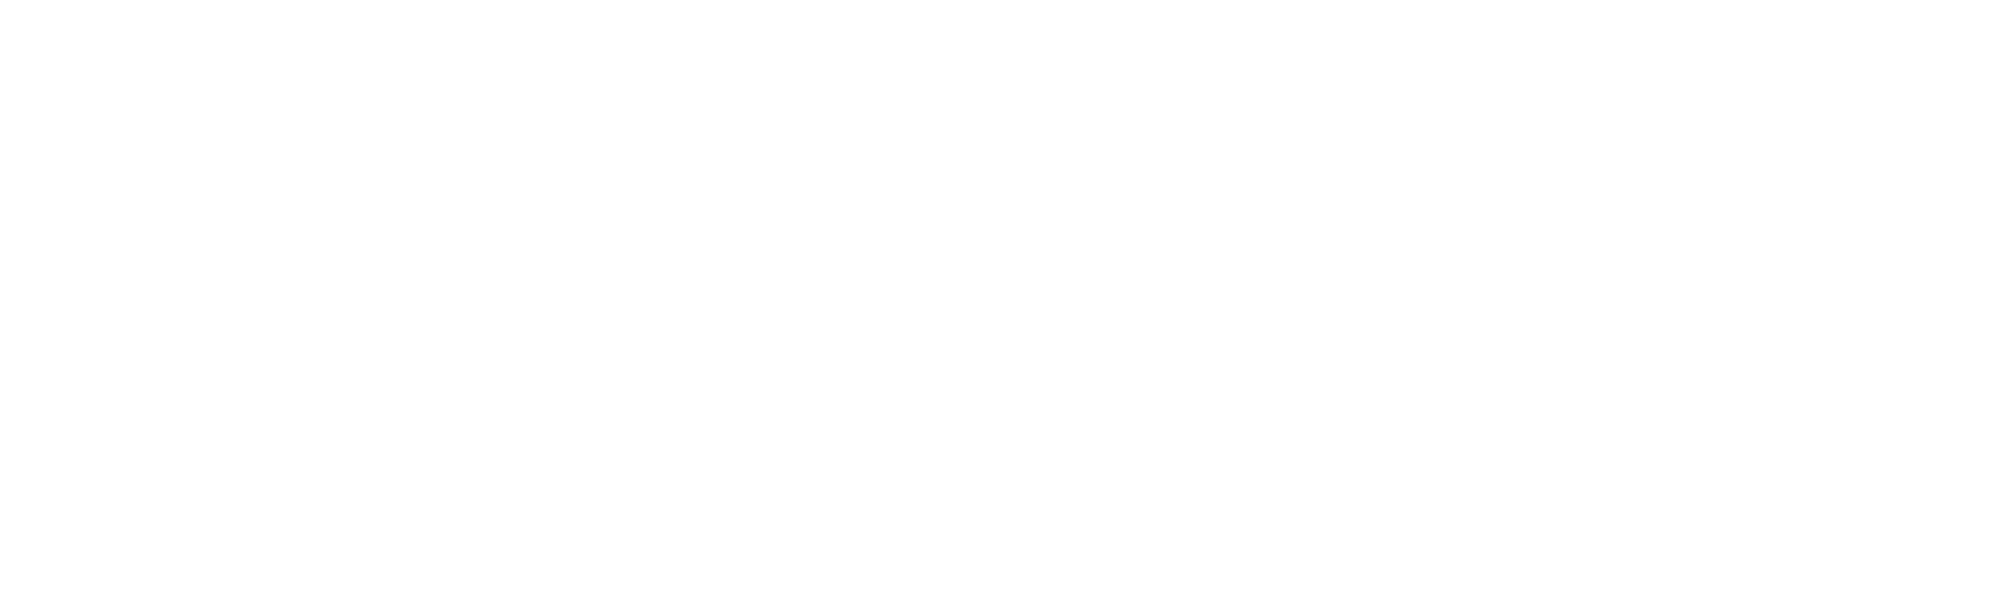 voice_logo_white_transparent.png